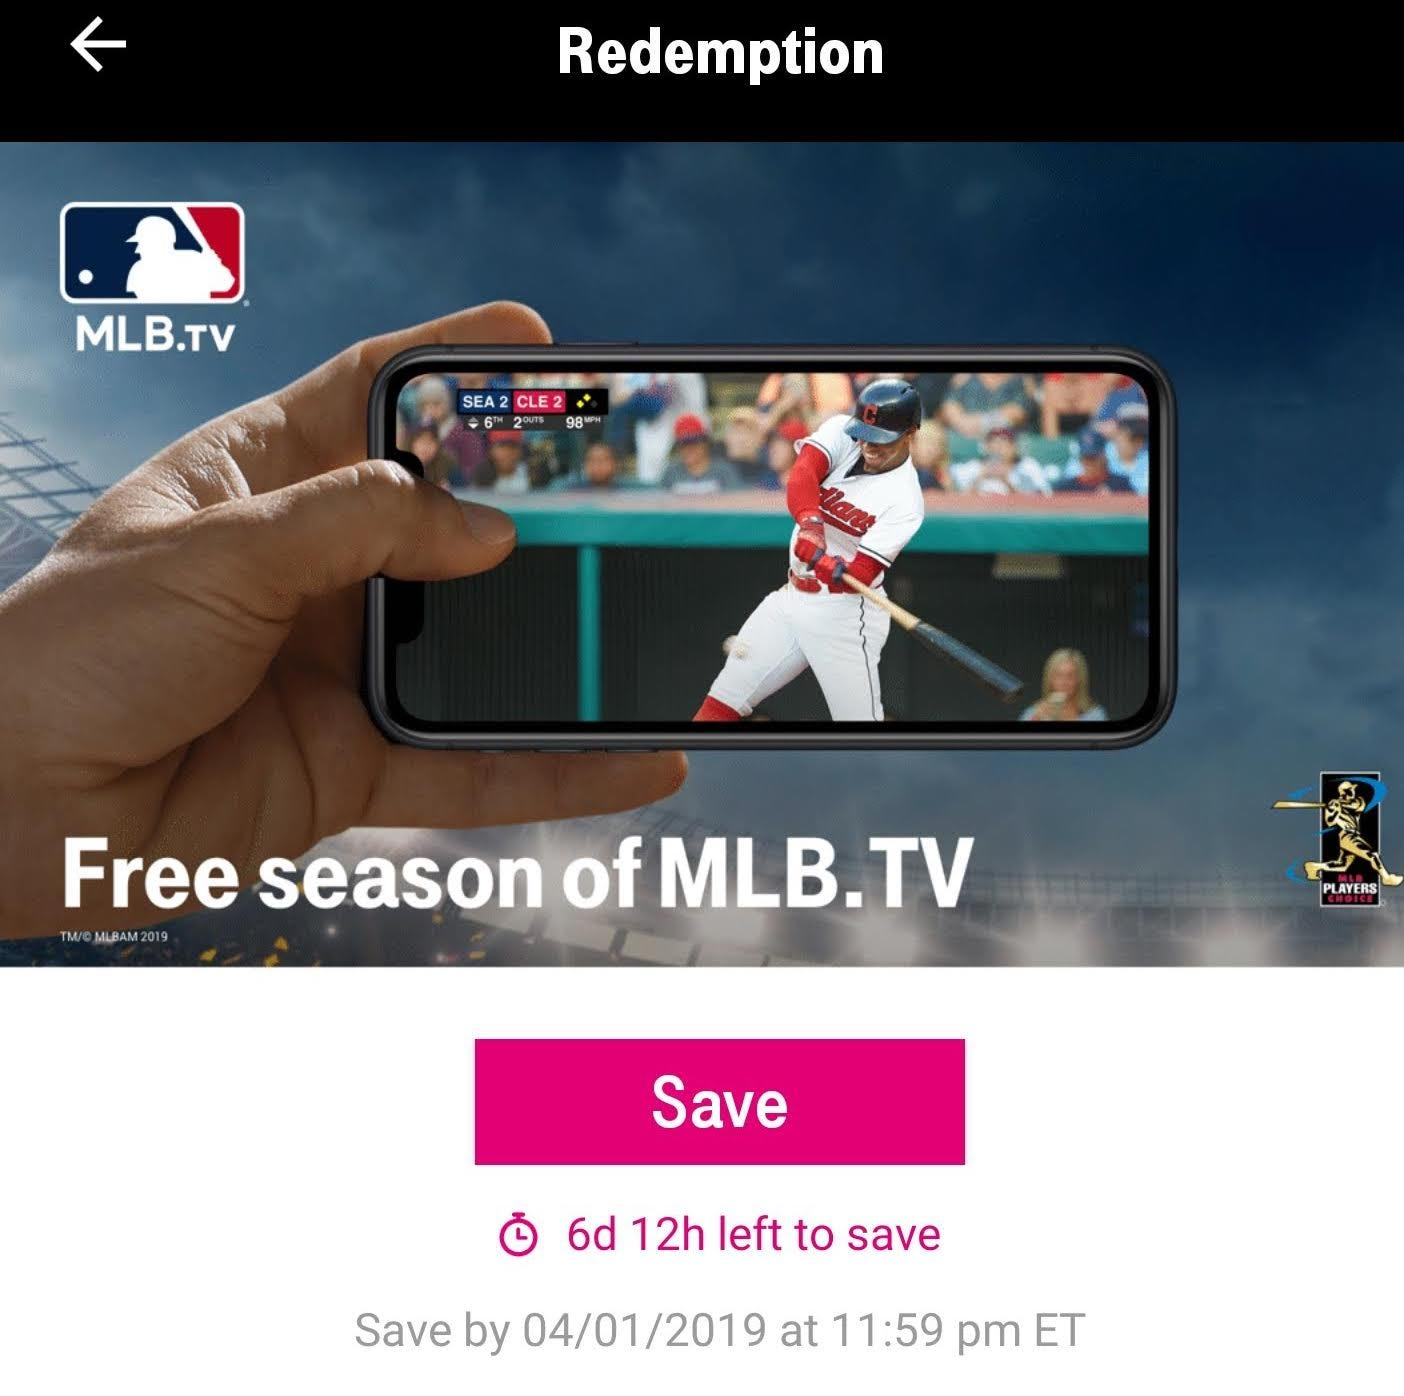 T-Mobile Tuesdays offers MLB.TV